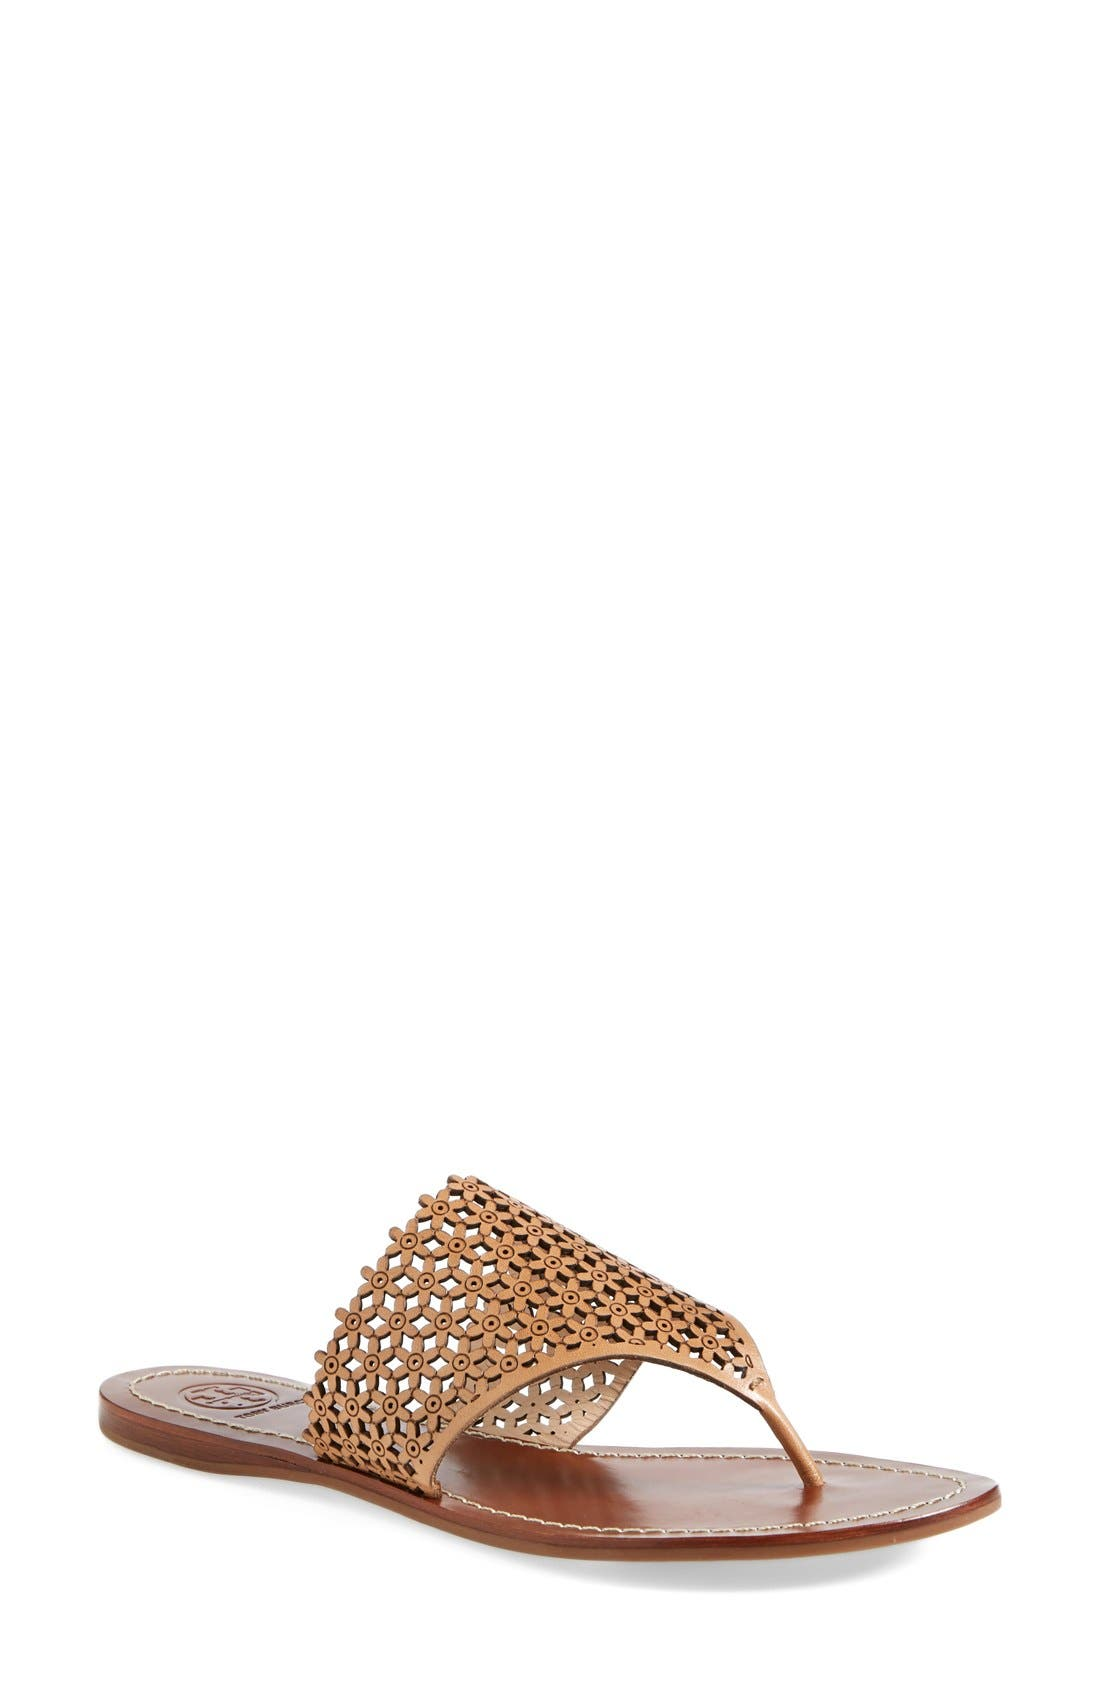 Main Image - Tory Burch 'Daisy' Perforated Sandal (Women)